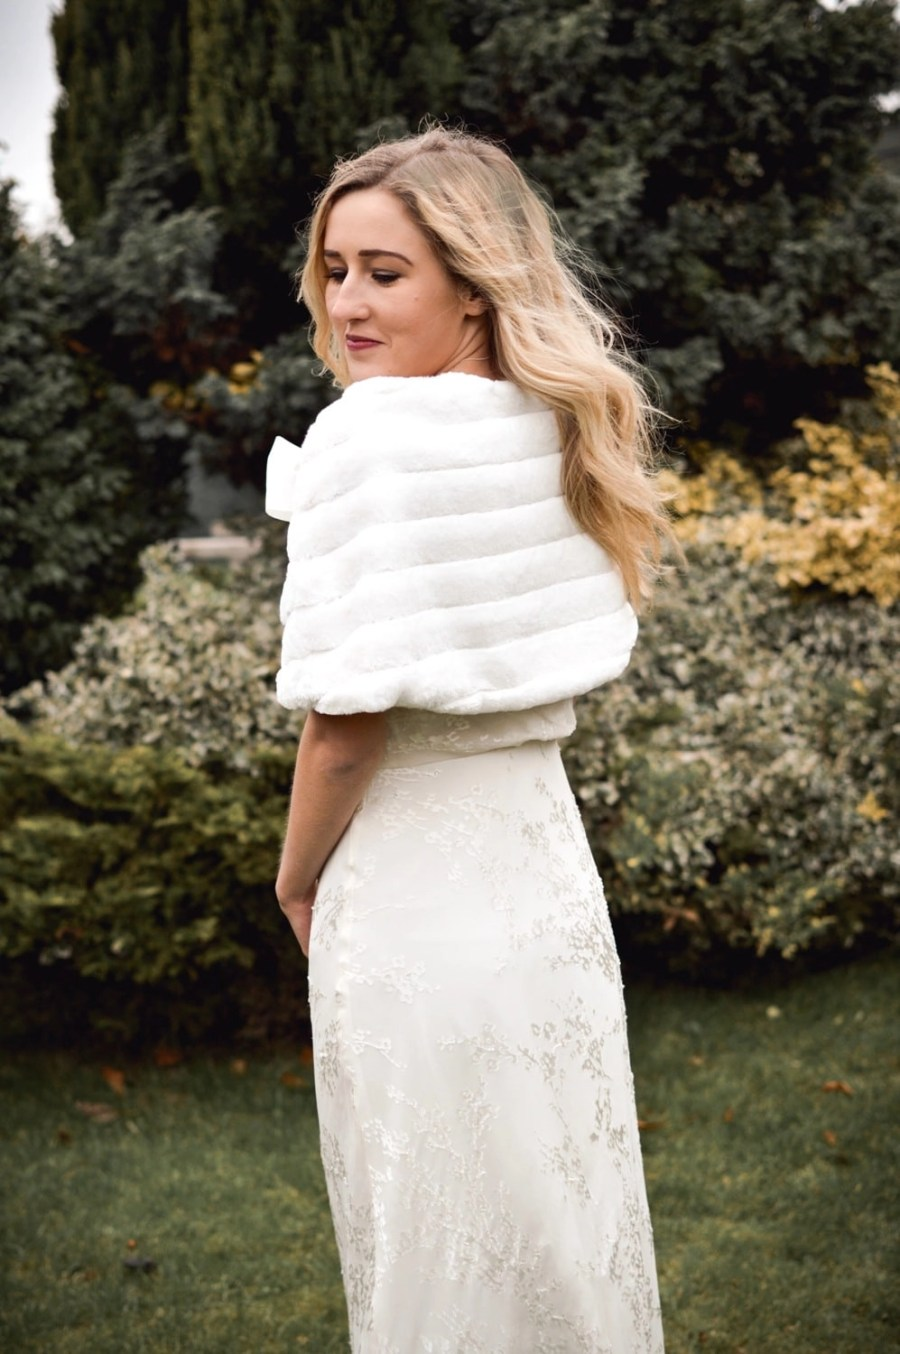 BB22 – faux fur bridal cape wrap shrug with a pretty satin bow on blonde bride with hair down in garden